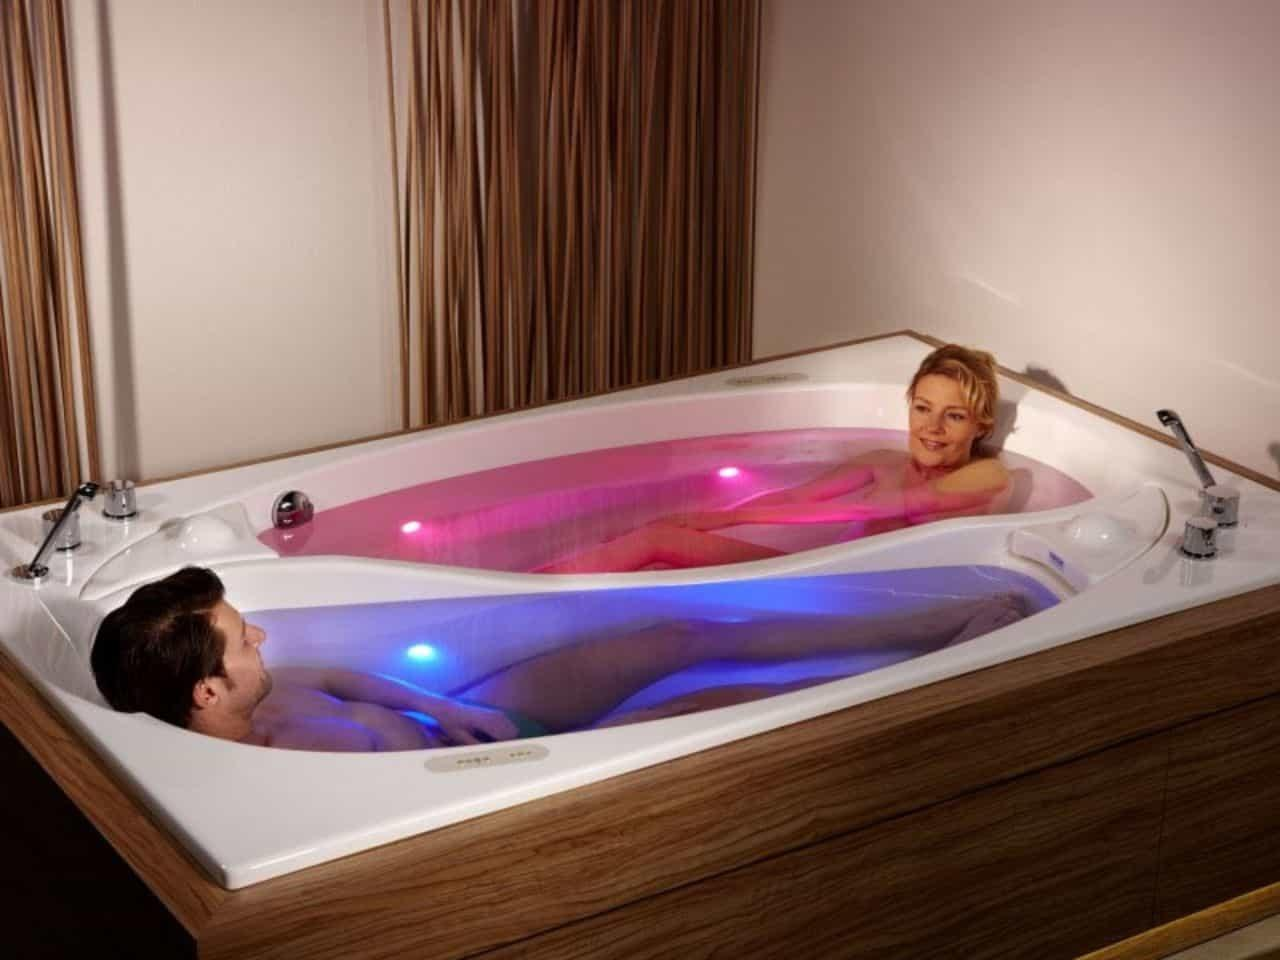 Unique Soaking Tub Yin Yang Design Led Light Idea